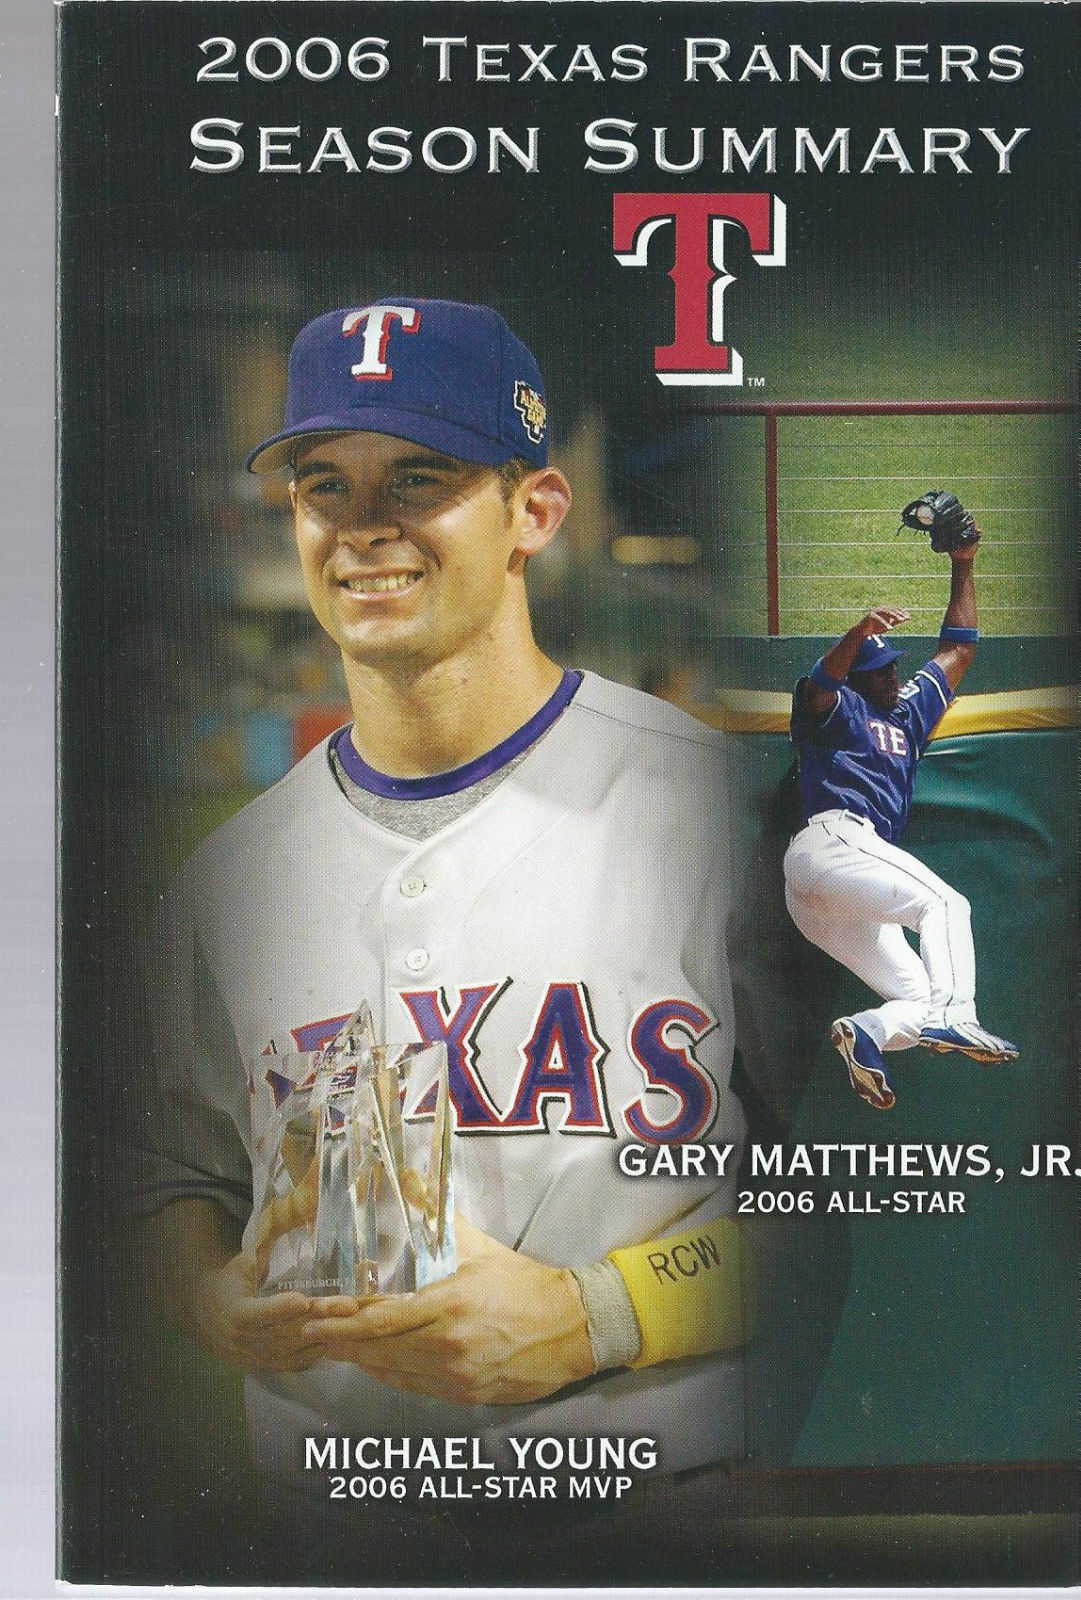 2006 Texas Rangers Baseball MLB Media Guide -  Post Season Summary Player Info